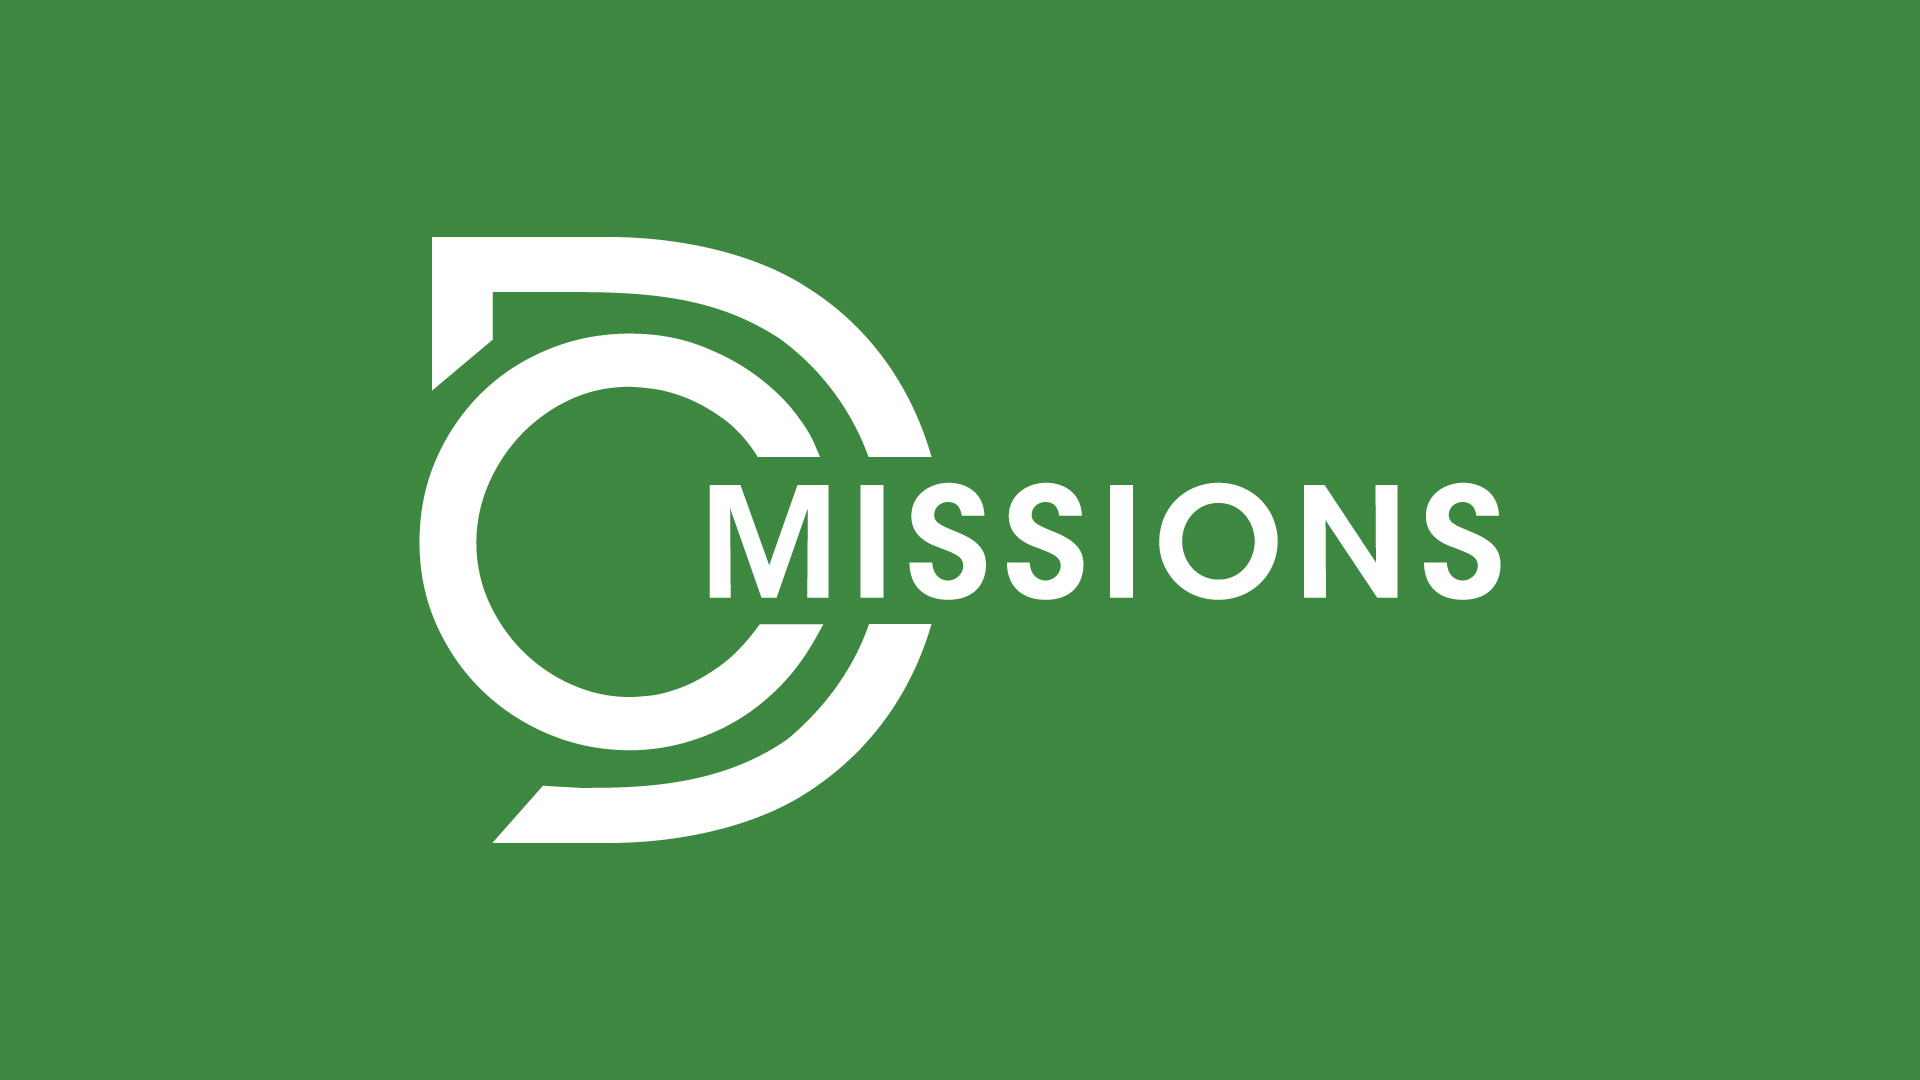 Missions image